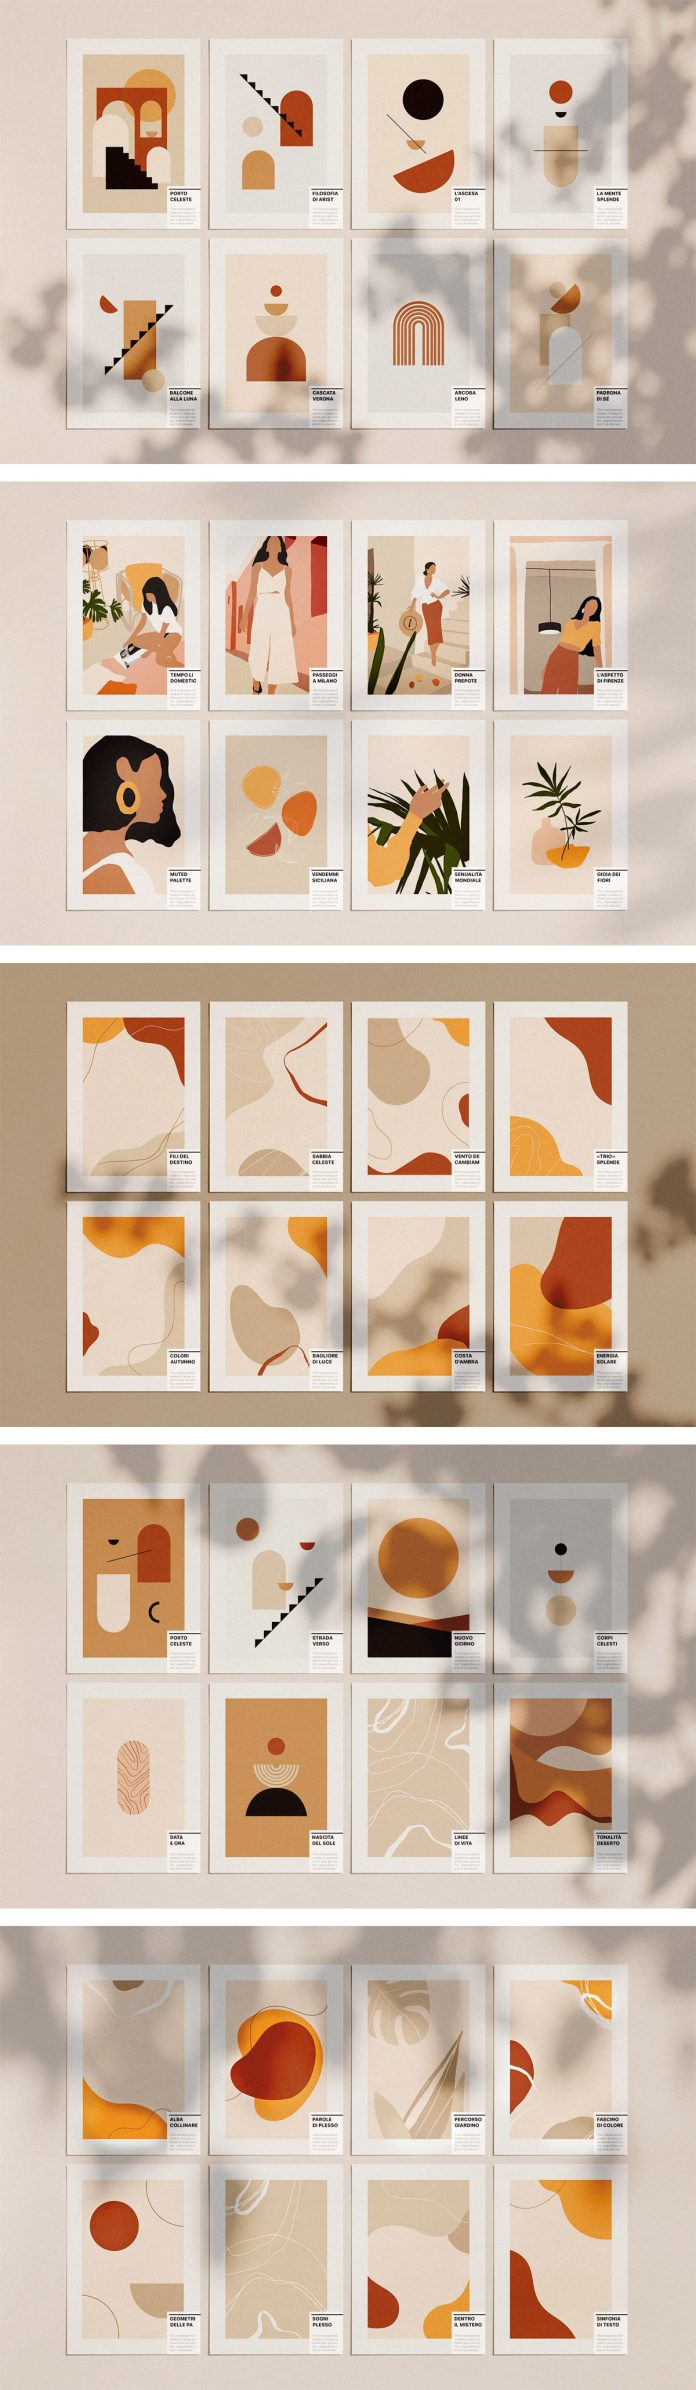 Abstract graphics designed by William Hansen.